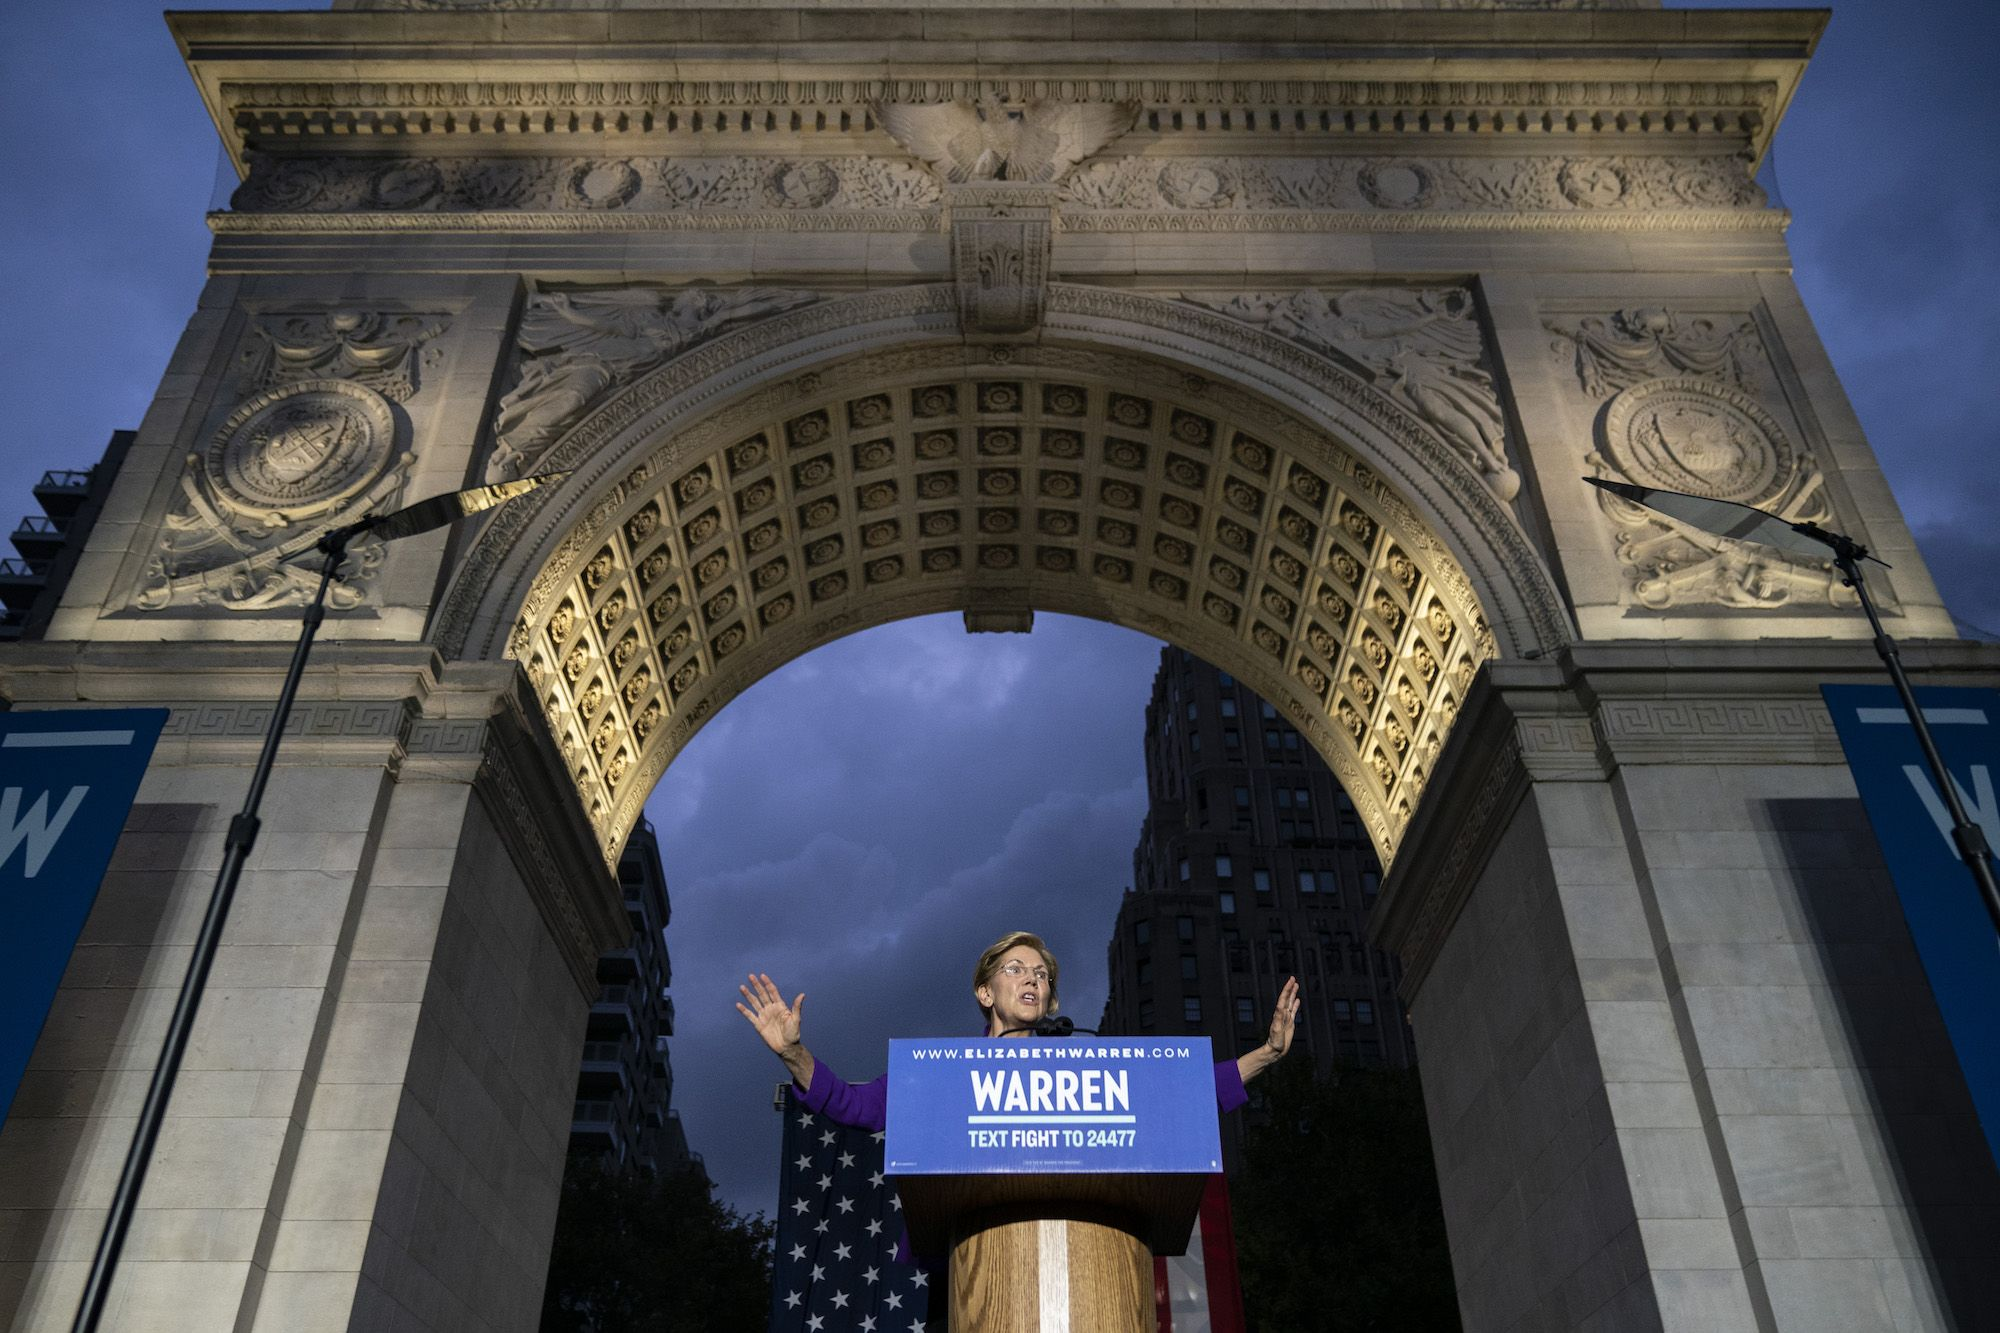 Elizabeth Warren Declared War on Corruption in the Heart of Lower Manhattan